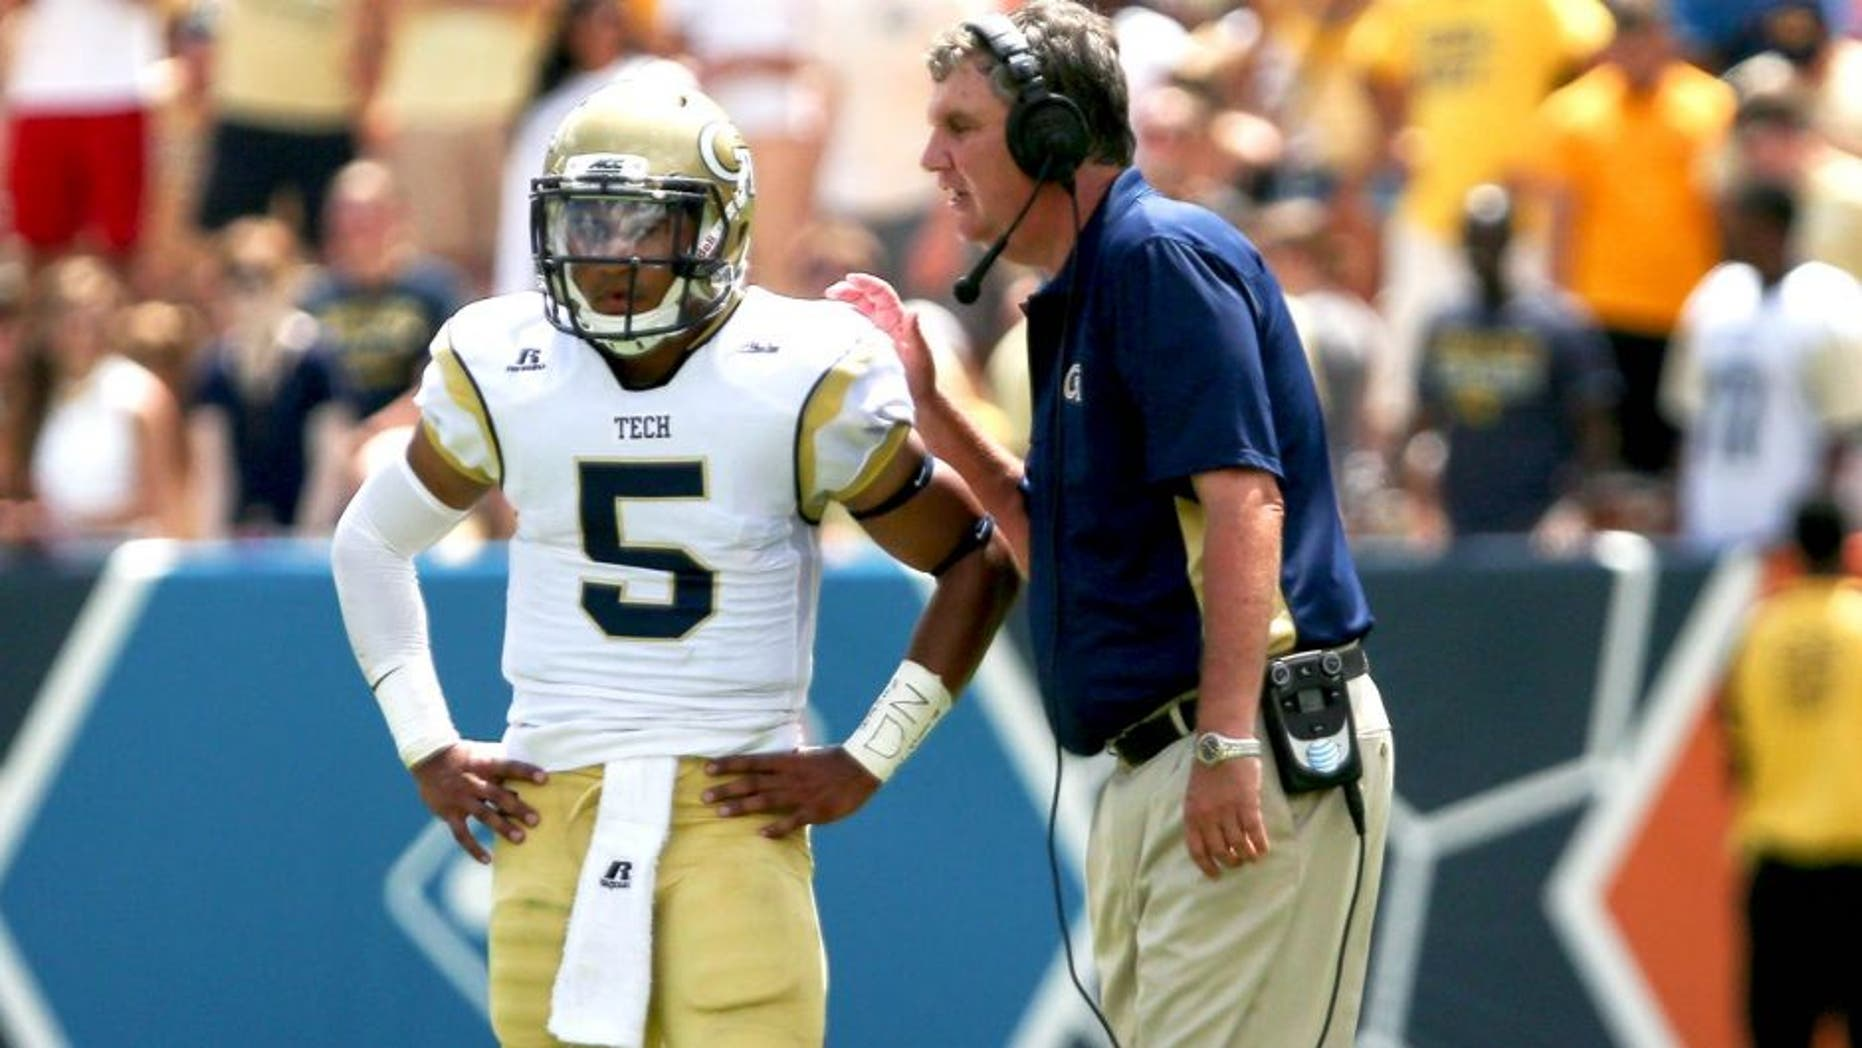 Aug 30, 2014; Atlanta, GA, USA; Georgia Tech Yellow Jackets head coach Paul Johnson talks with quarterback Justin Thomas (5) during the second quarter at Bobby Dodd Stadium. Georgia Tech won 38-19. Mandatory Credit: Kevin Liles-USA TODAY Sports